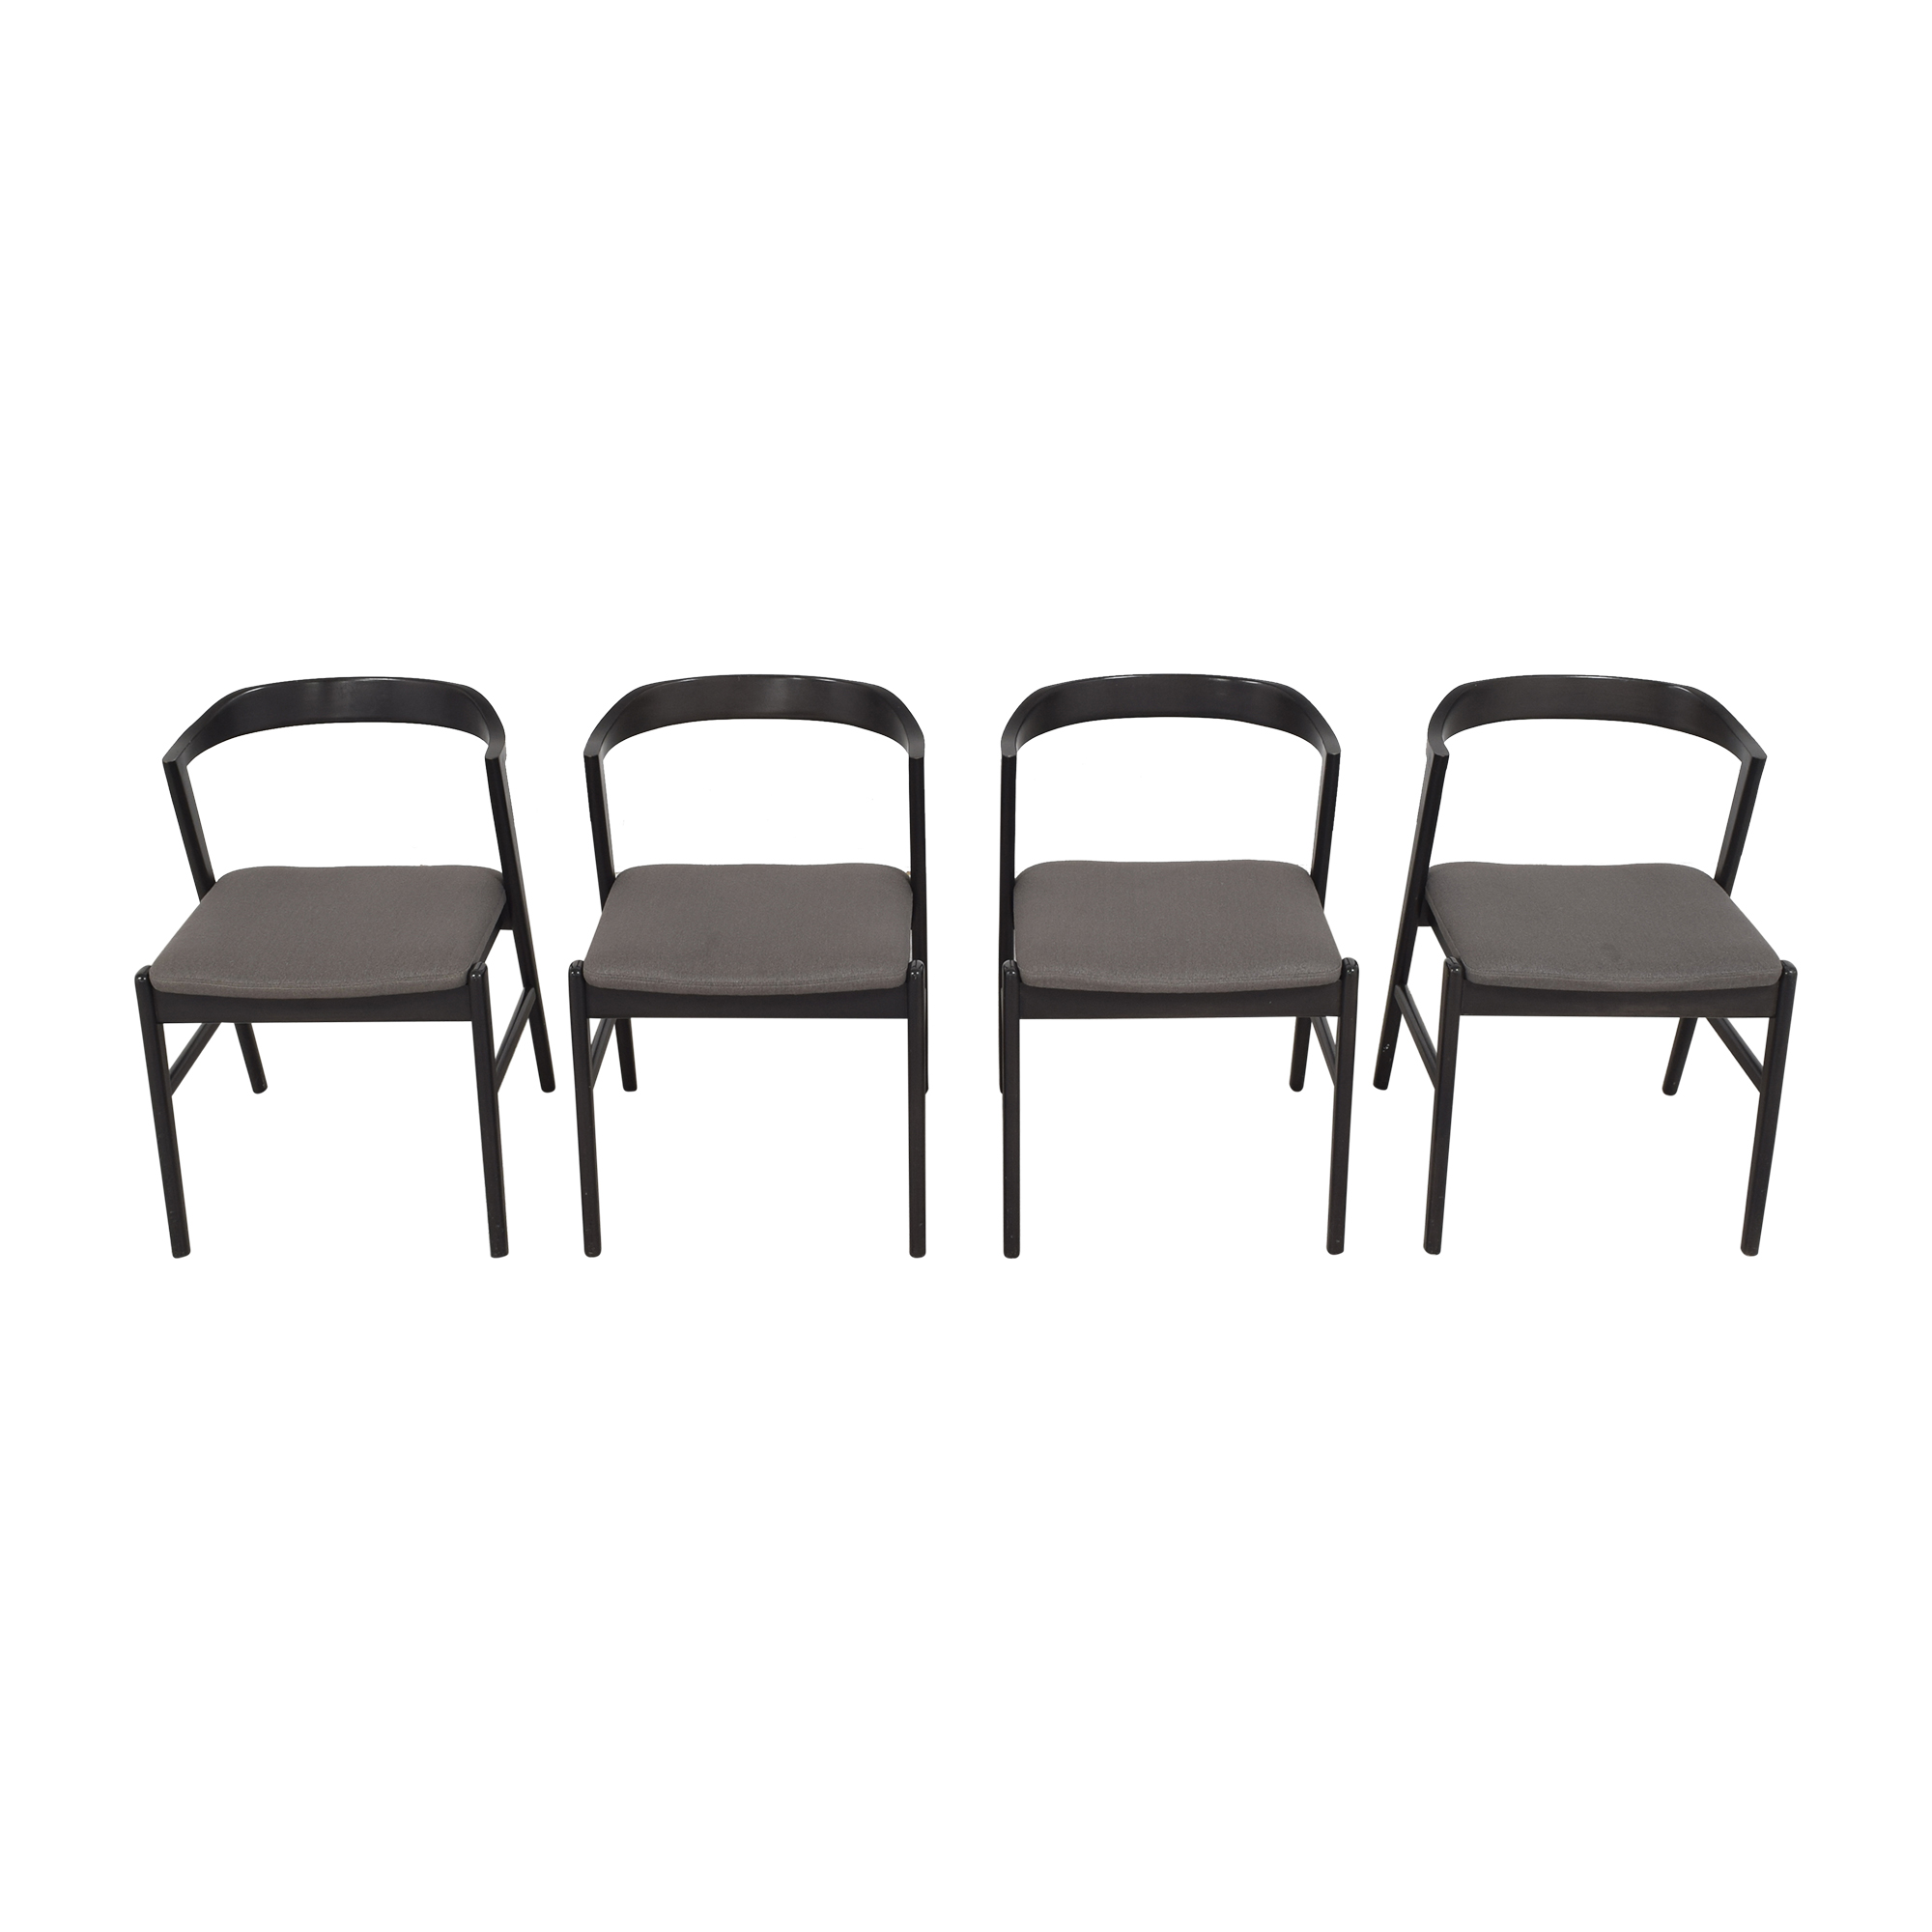 Room & Board Room & Board Jansen Dining Chairs for sale